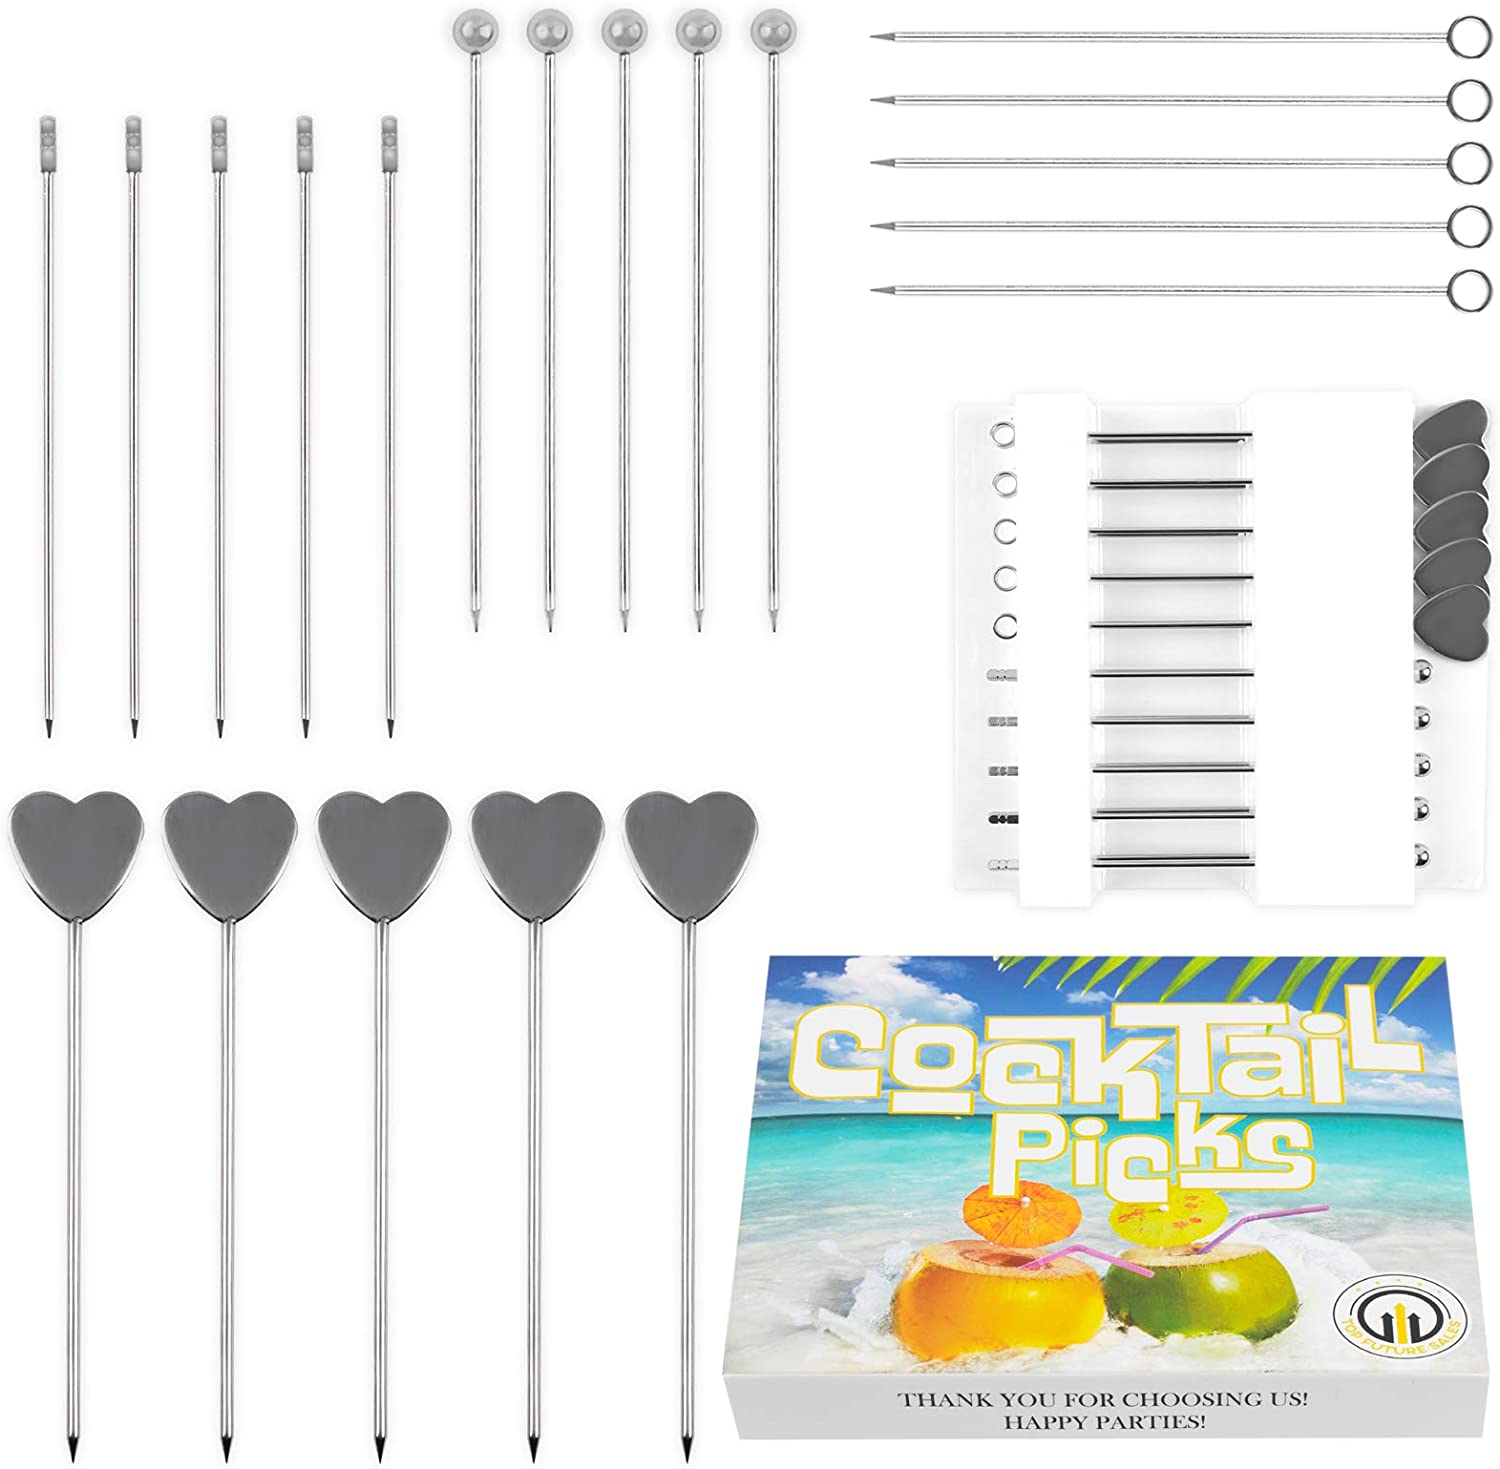 Cocktail Picks for Fancy Drinks and Appetizers - 20 Pcs Different Stainless steel for Martini Food Bar Party-Gift Box with Holder-Ball Square Ring Heart Toothpick Upgrade Design for Cocktails